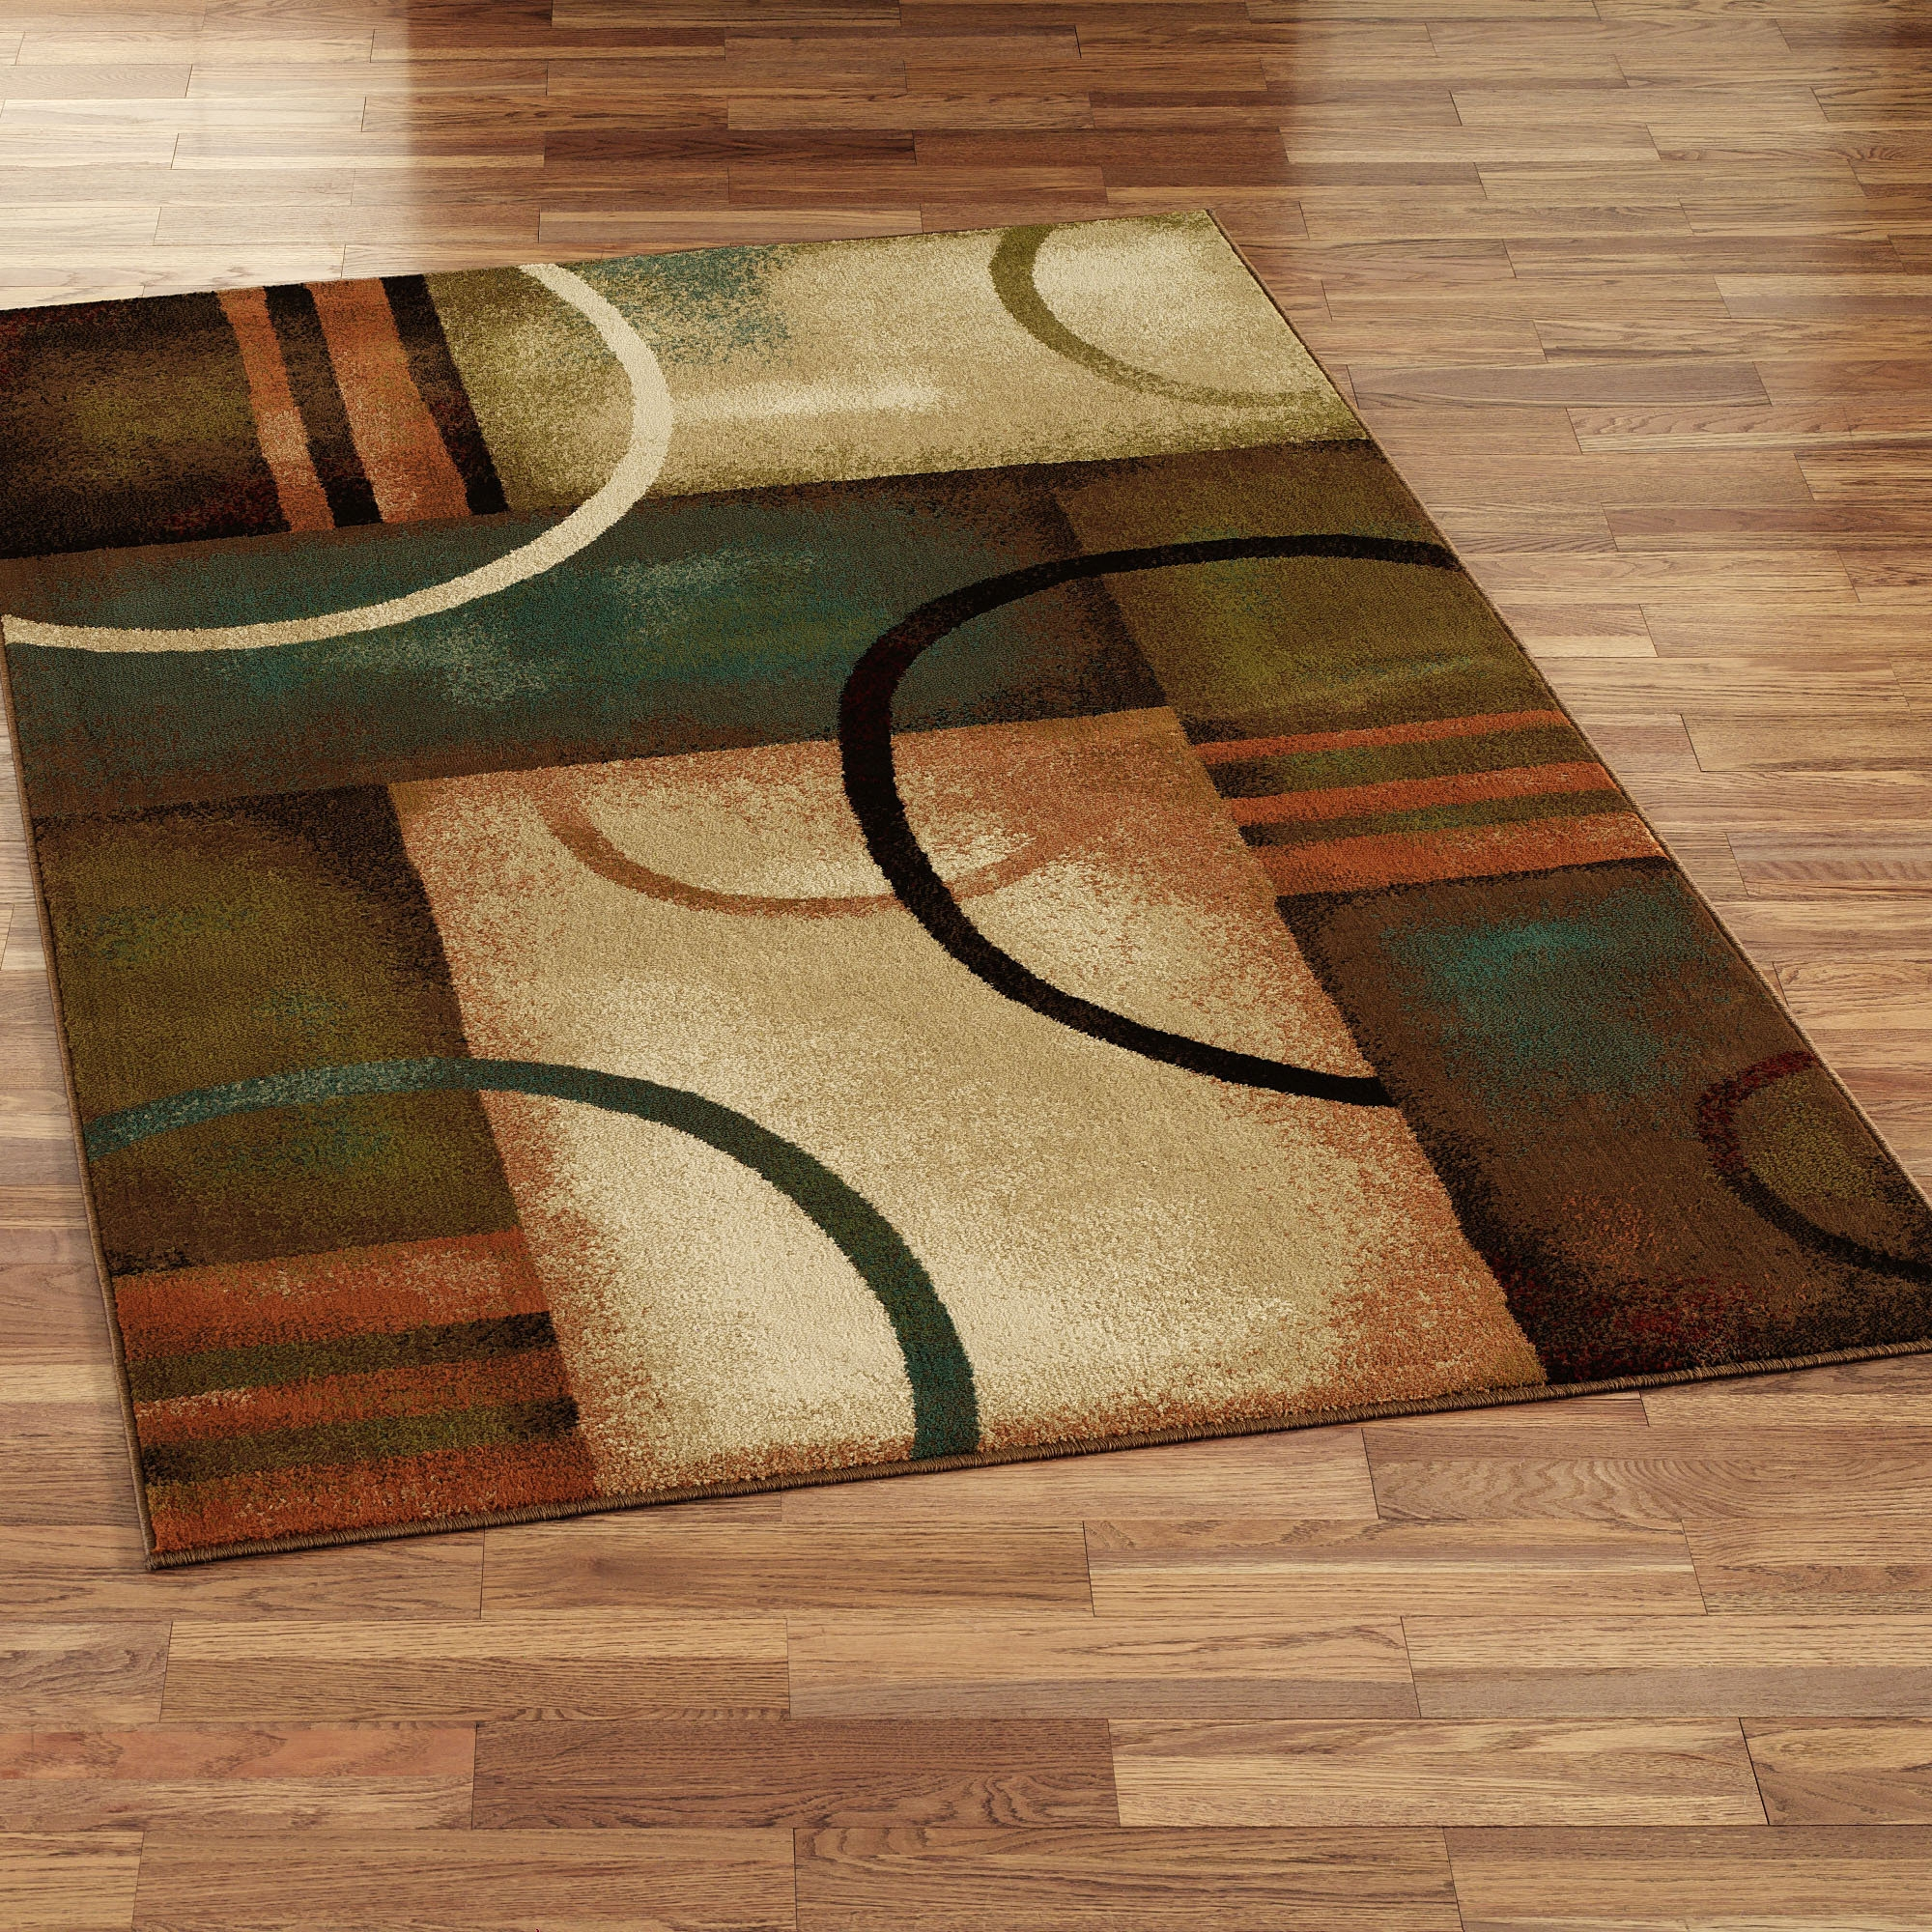 Square Contemporary Rugs Pertaining To Square Wool Area Rugs (#12 of 15)